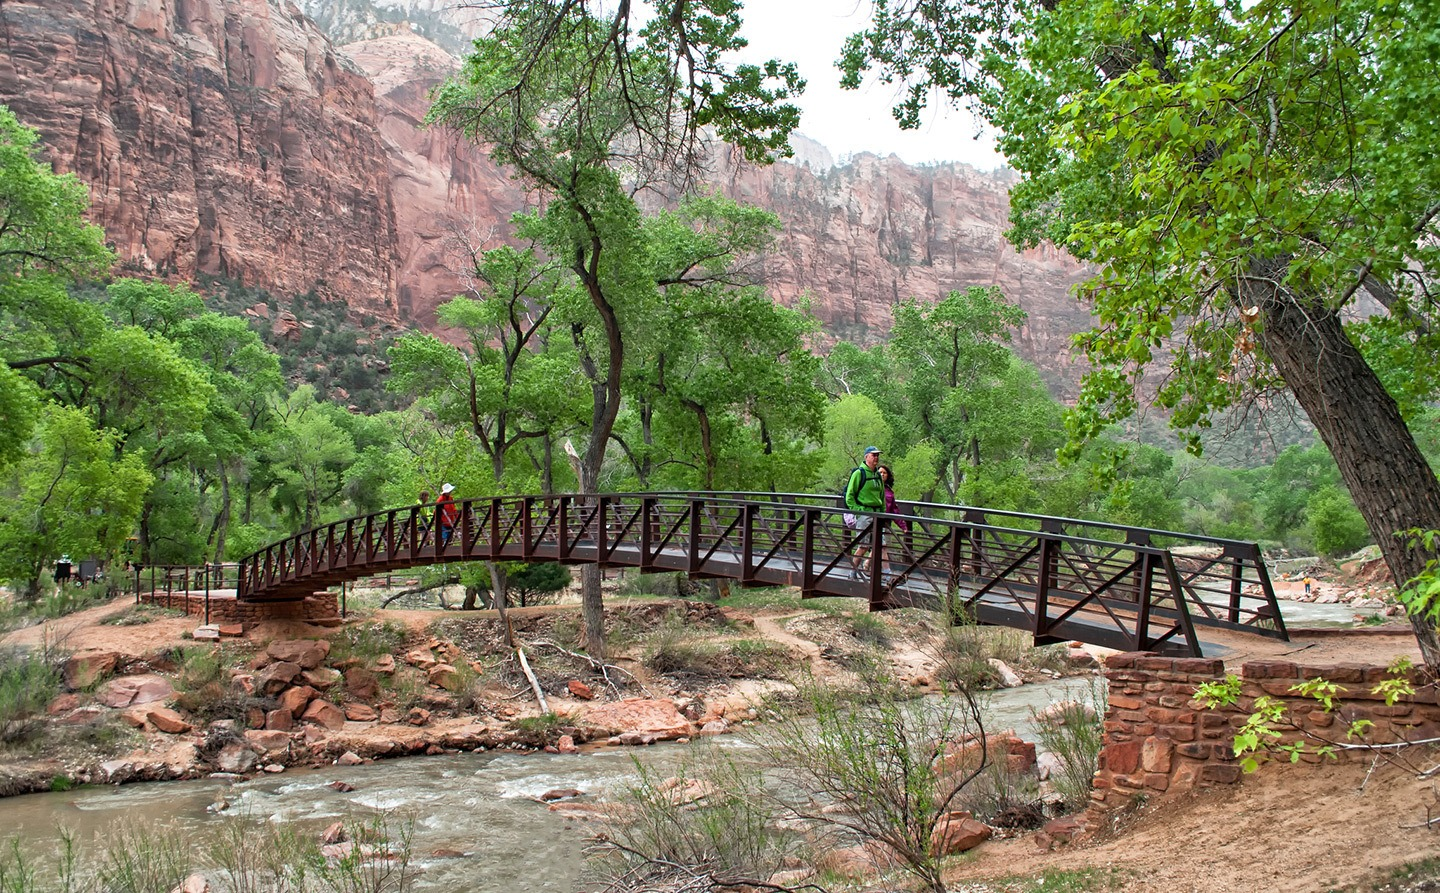 Bridge at Zion National Park, Utah, USA